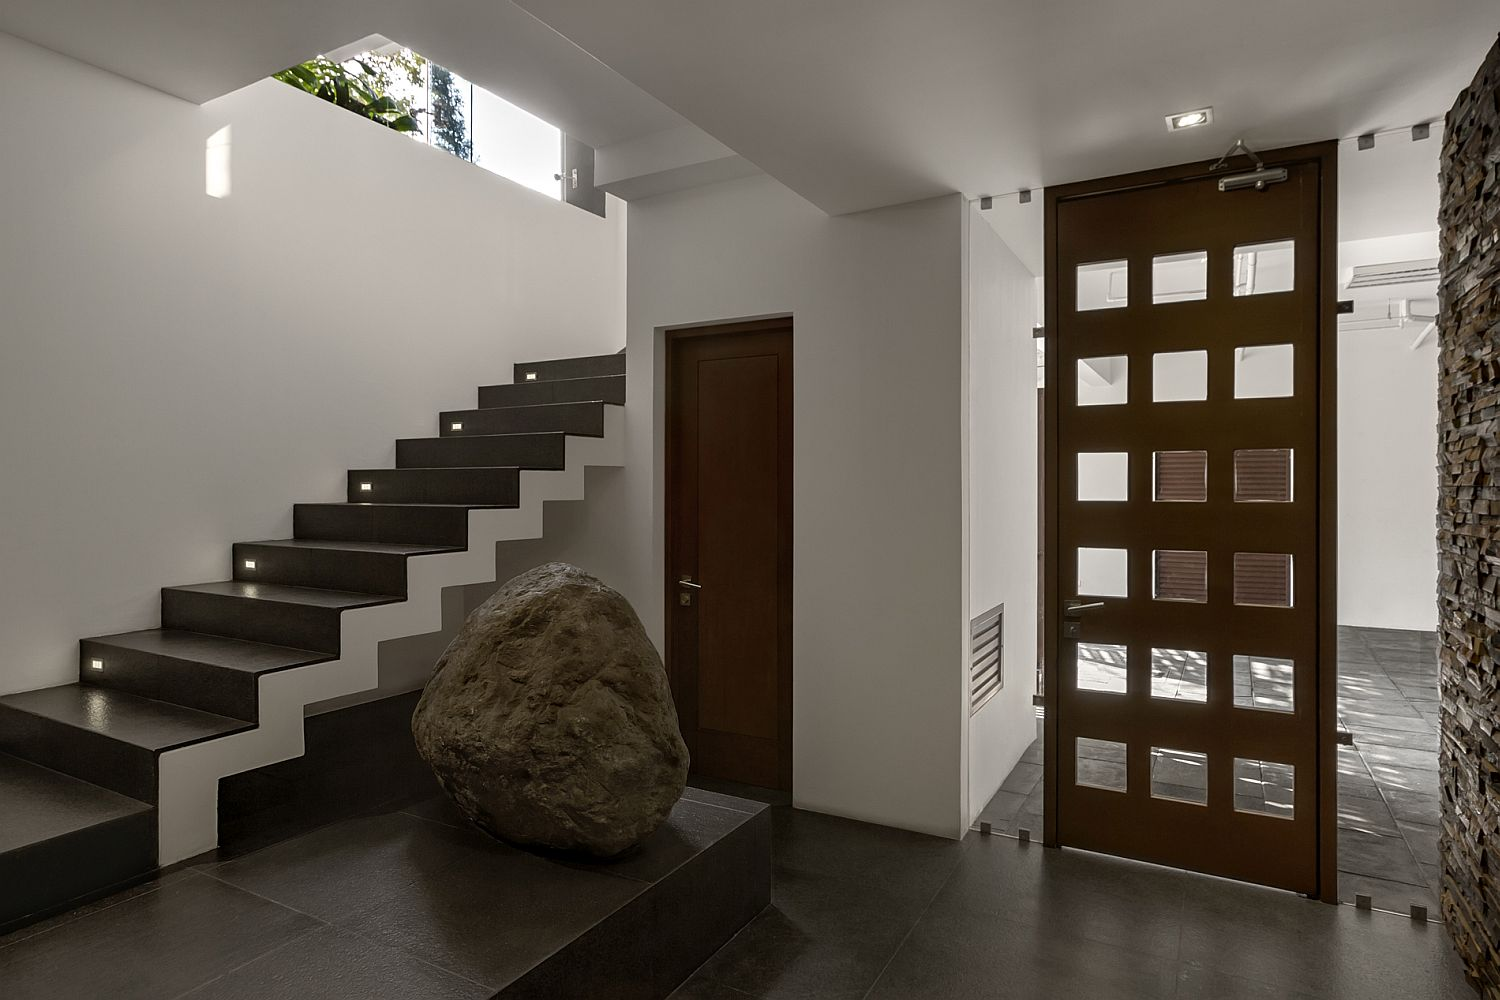 Large-boulder-and-illuminated-stairway-inside-the-San-Isidro-House